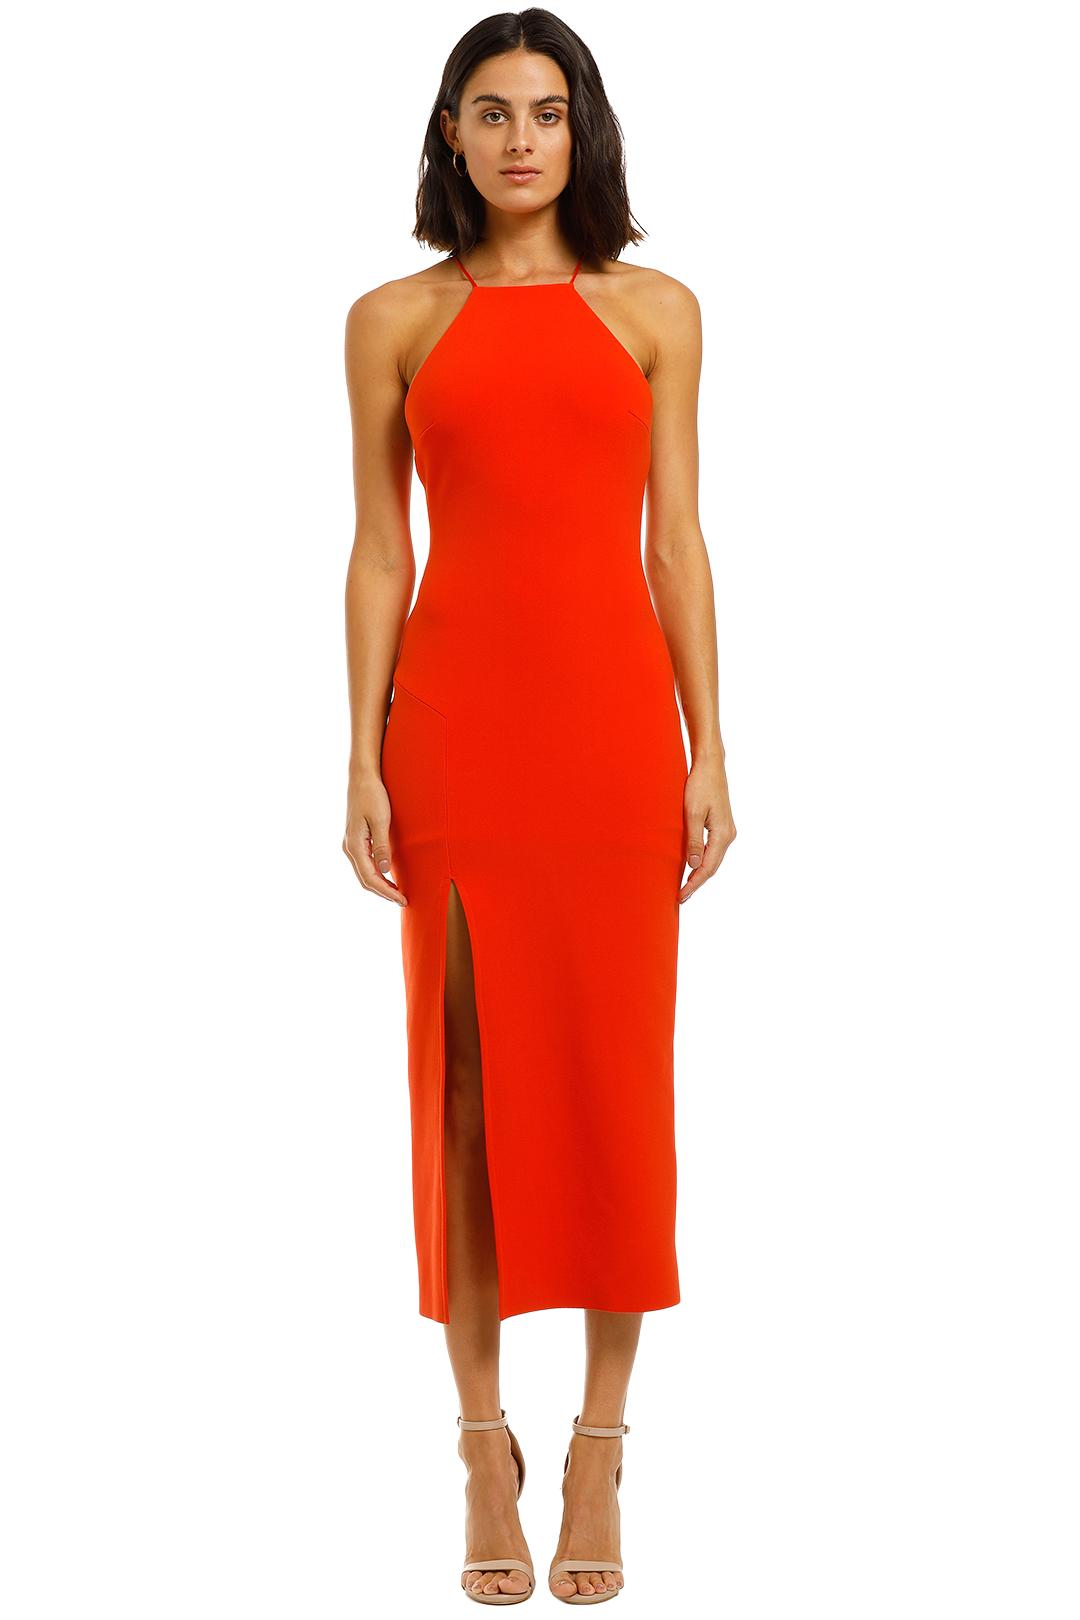 BEC + BRIDGE - Candy Midi Dress - Chilli